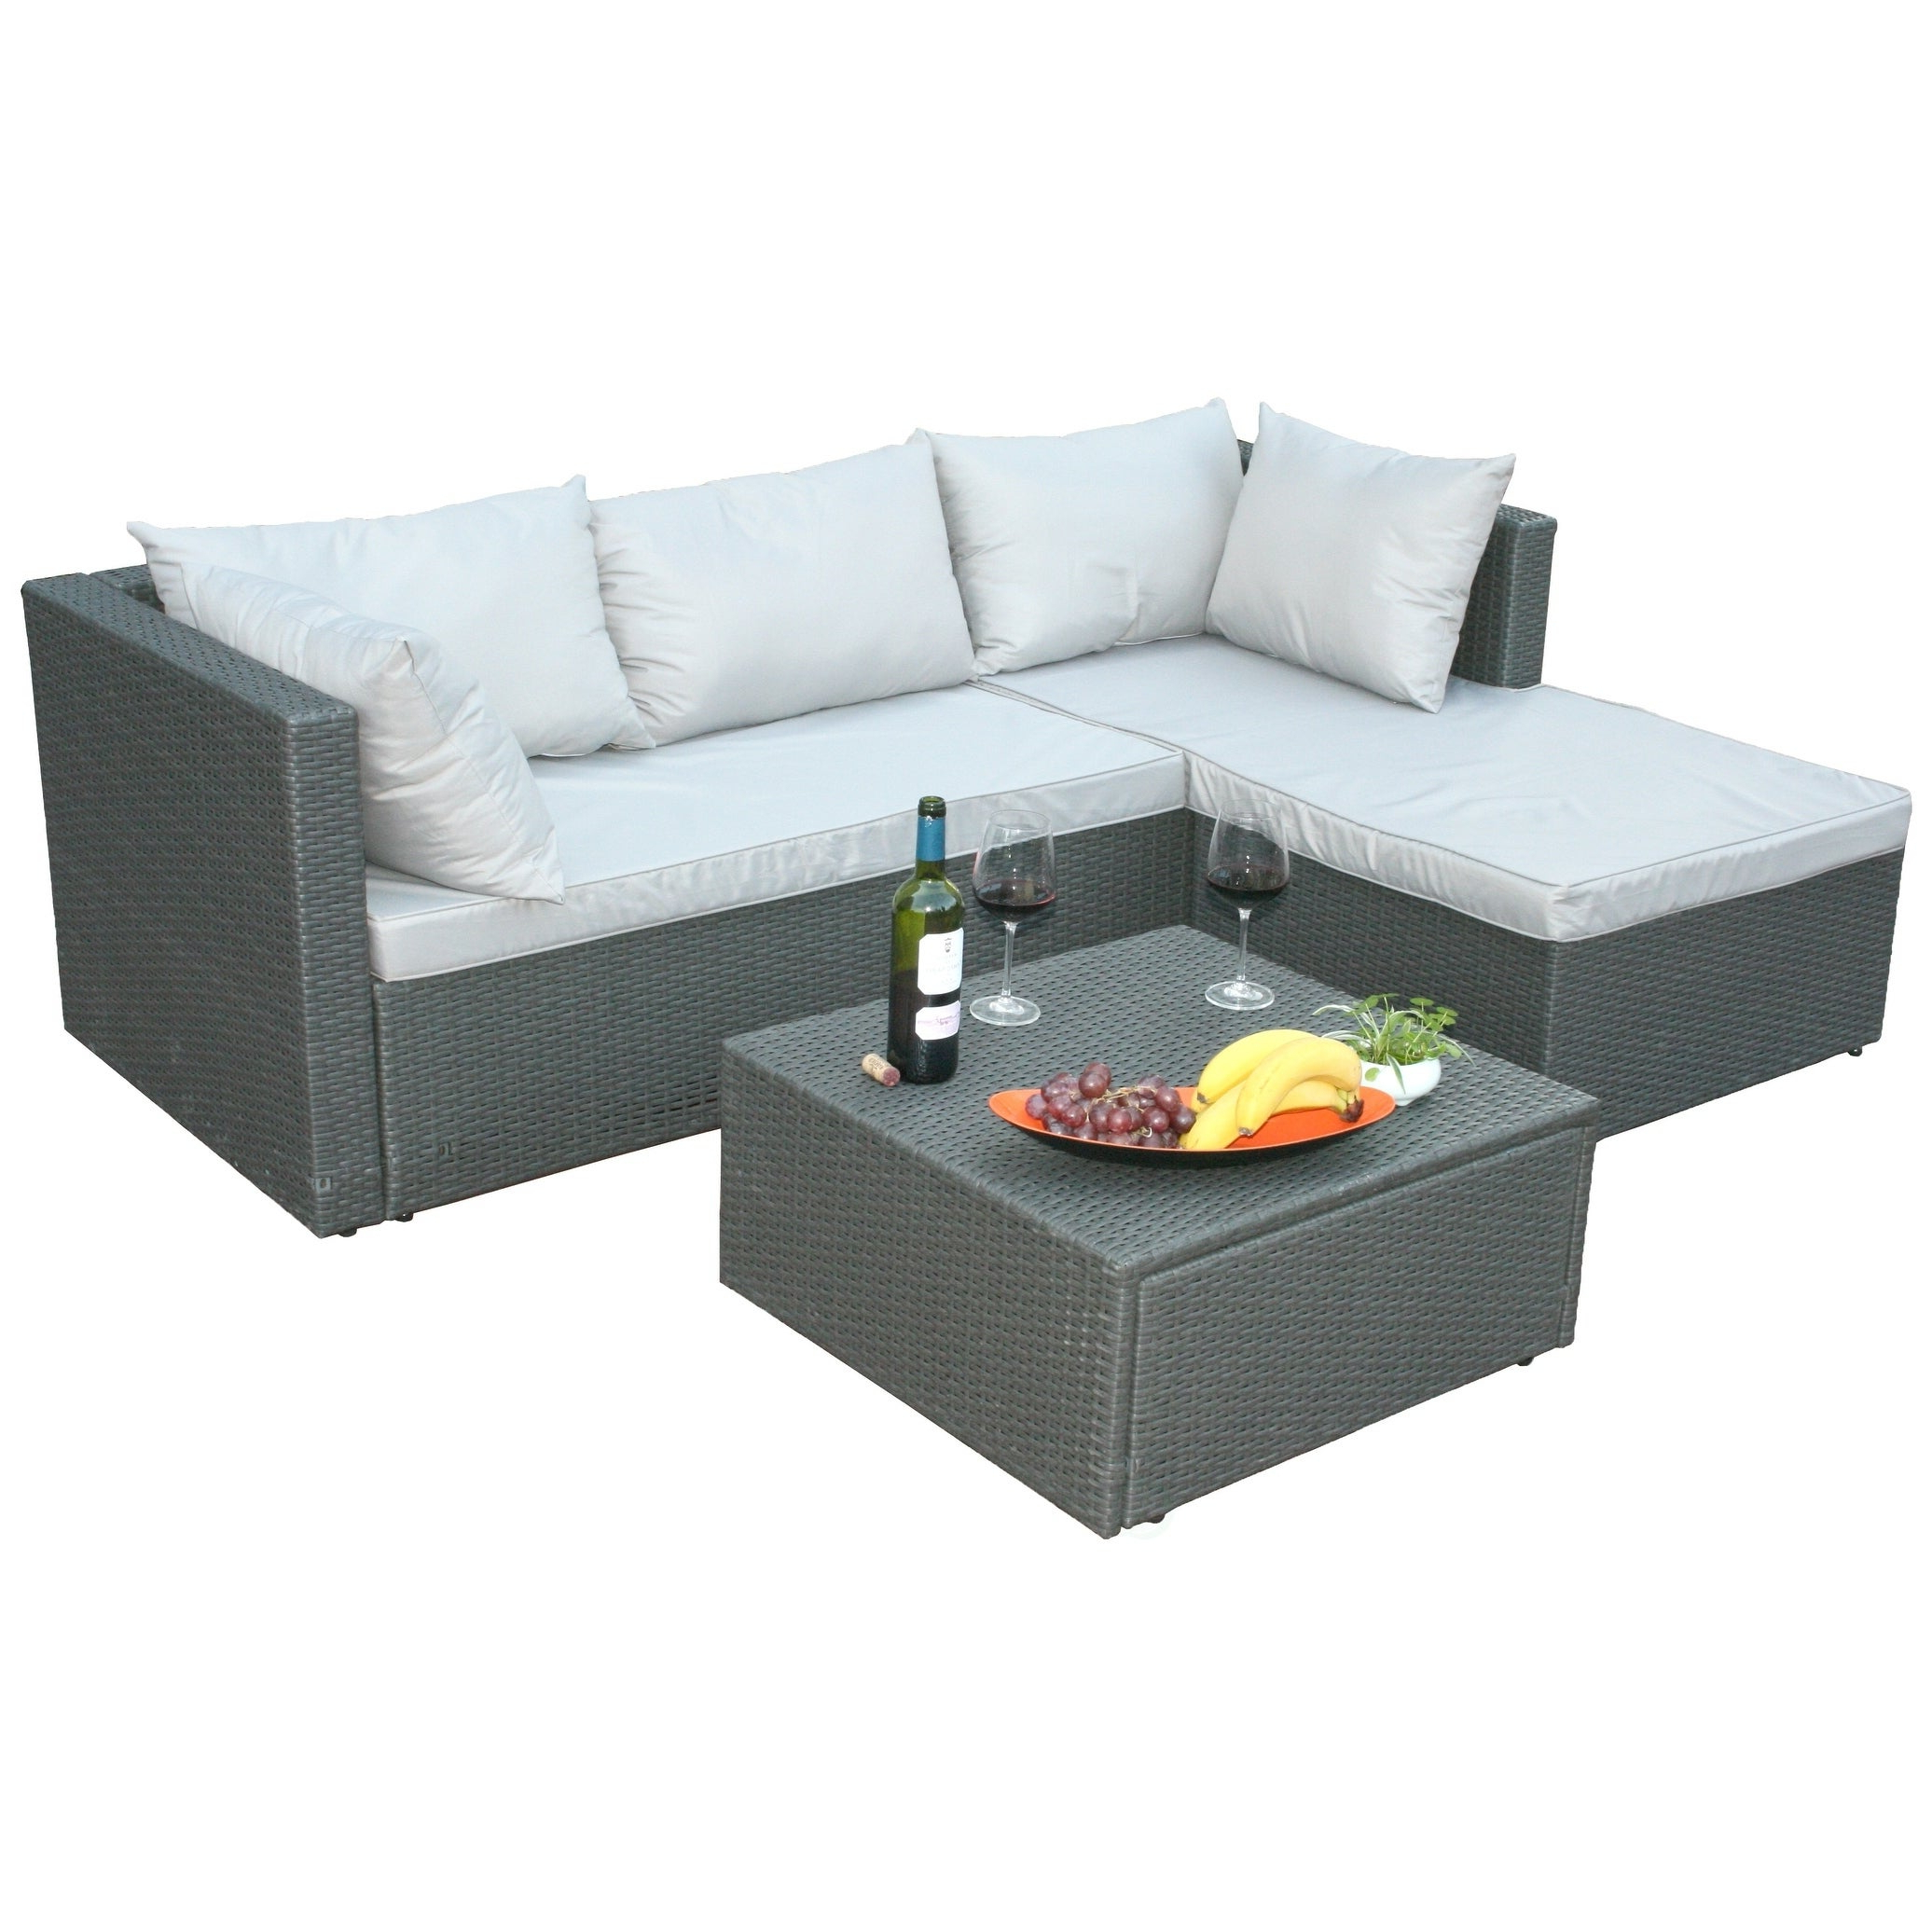 Vallauris Storage Patio Sectionals With Cushions Pertaining To Current Outdoor Patio Garden Sectional Sofa, Cushion And Ottoman/coffee Table (View 21 of 25)